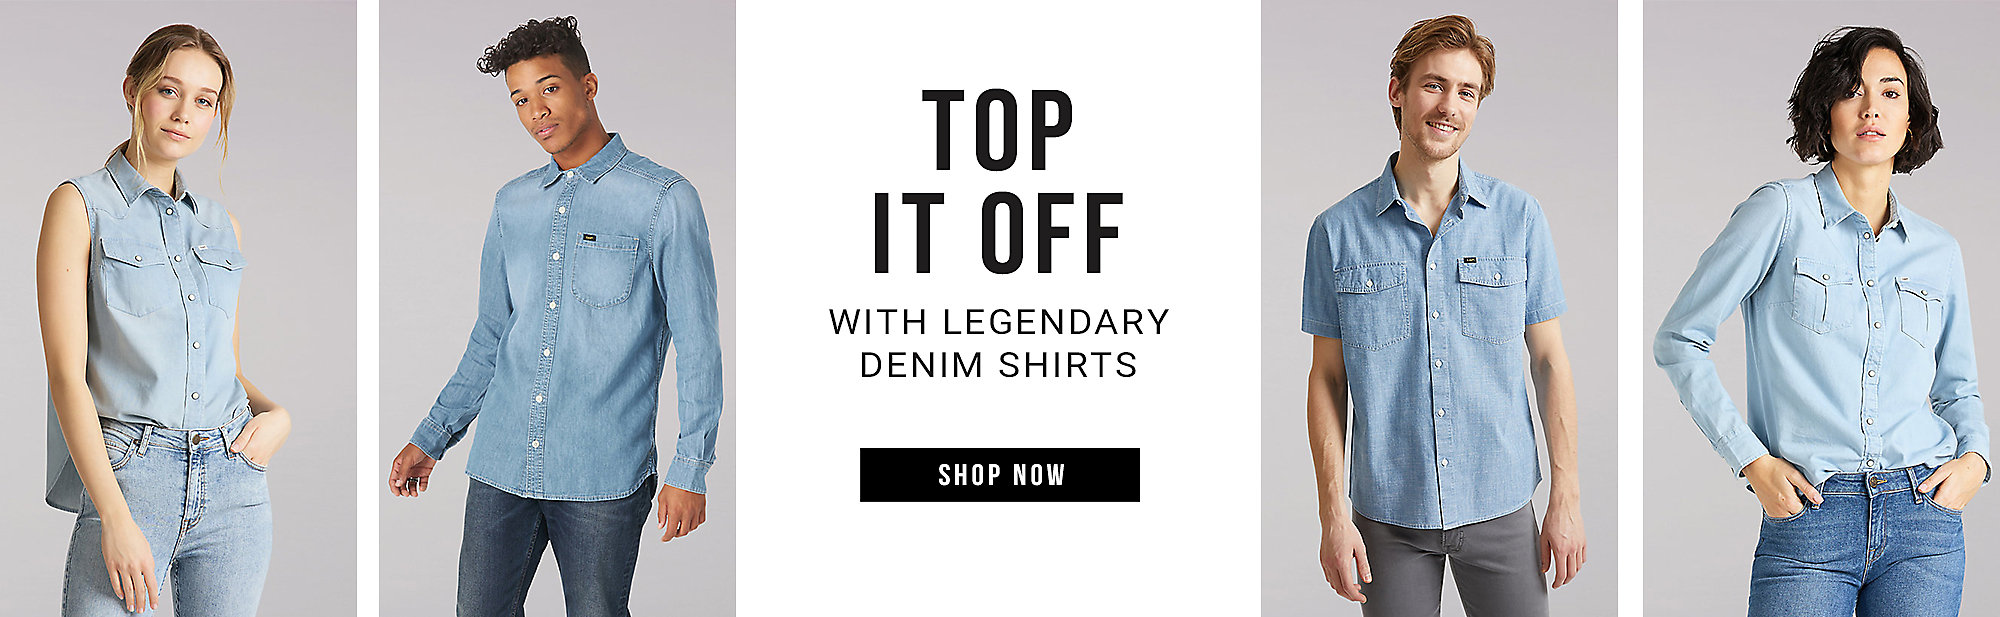 Shop Denim Shirts